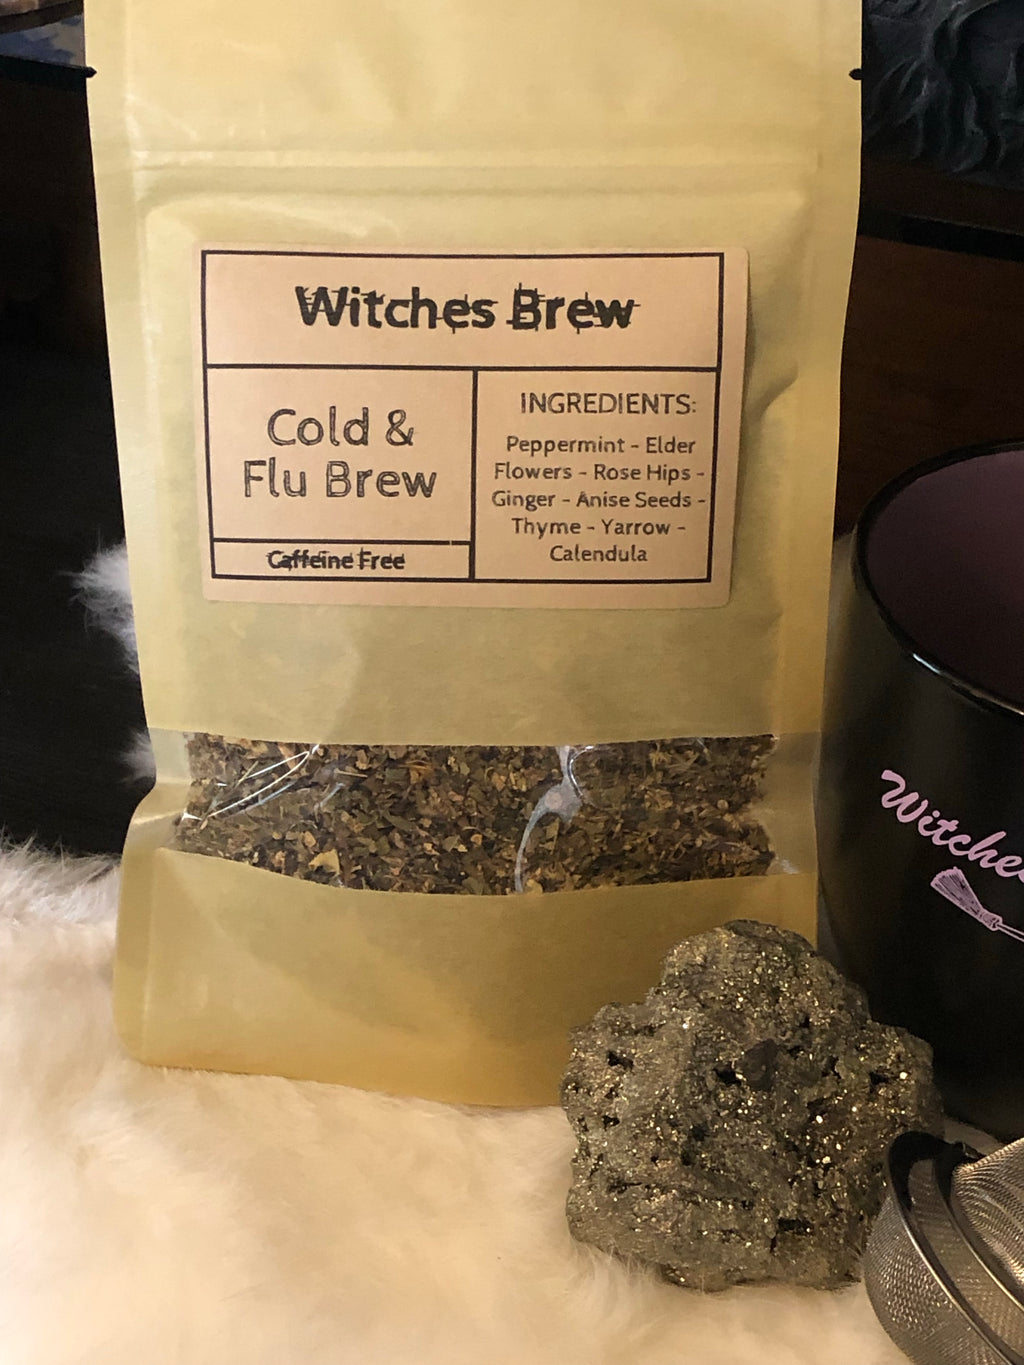 Cold & Flu Brew